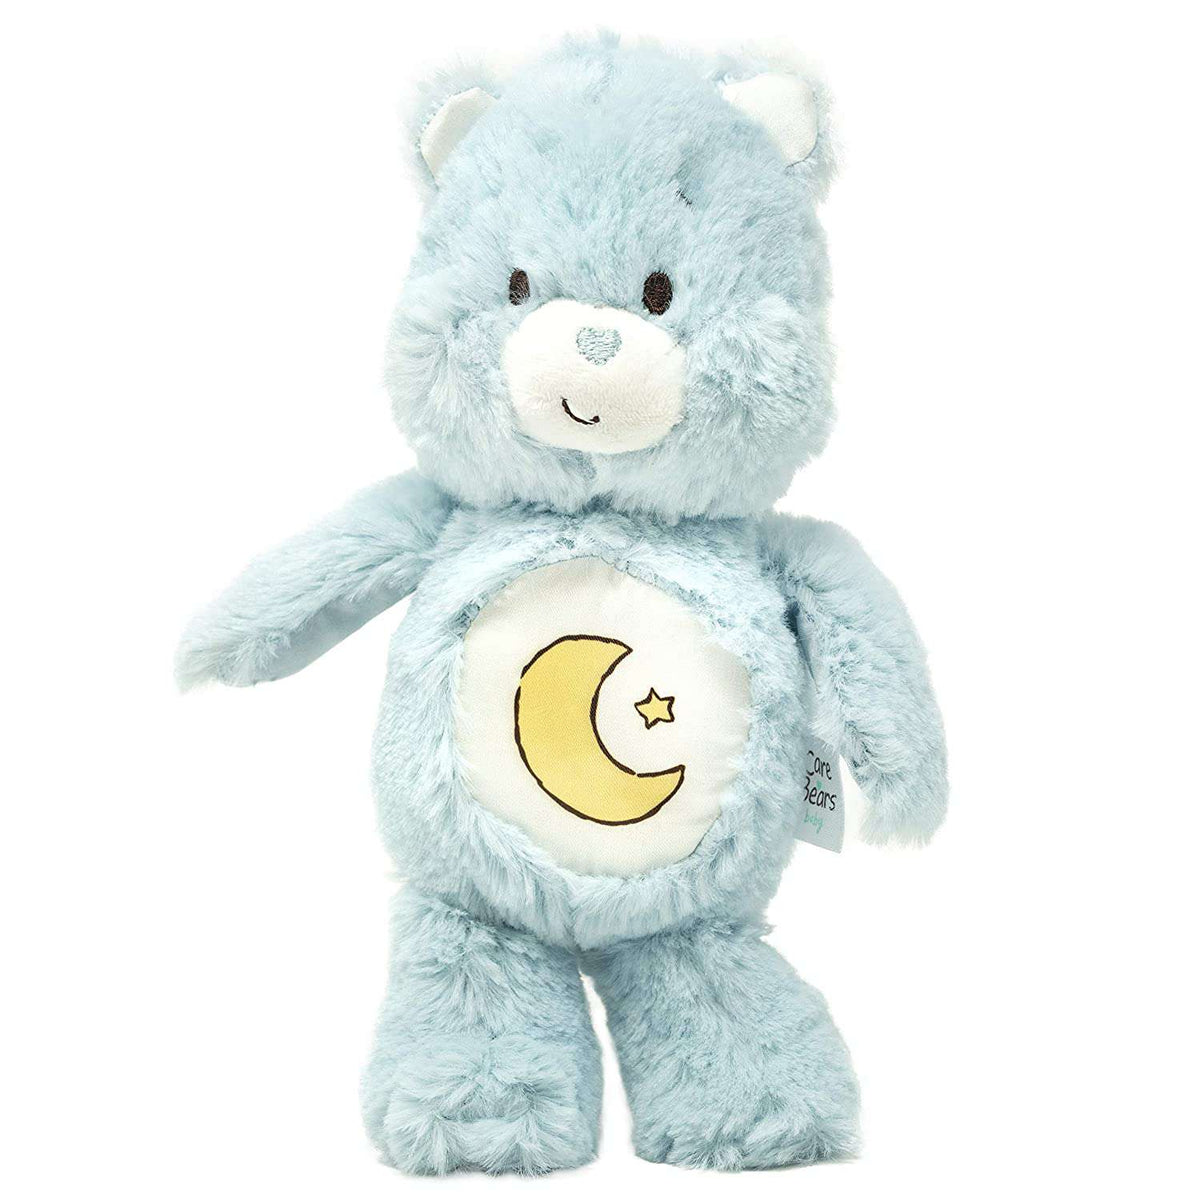 Kids Preferred Care Bears - Bedtime Bear Bean Bag Rattle - Legacy Toys